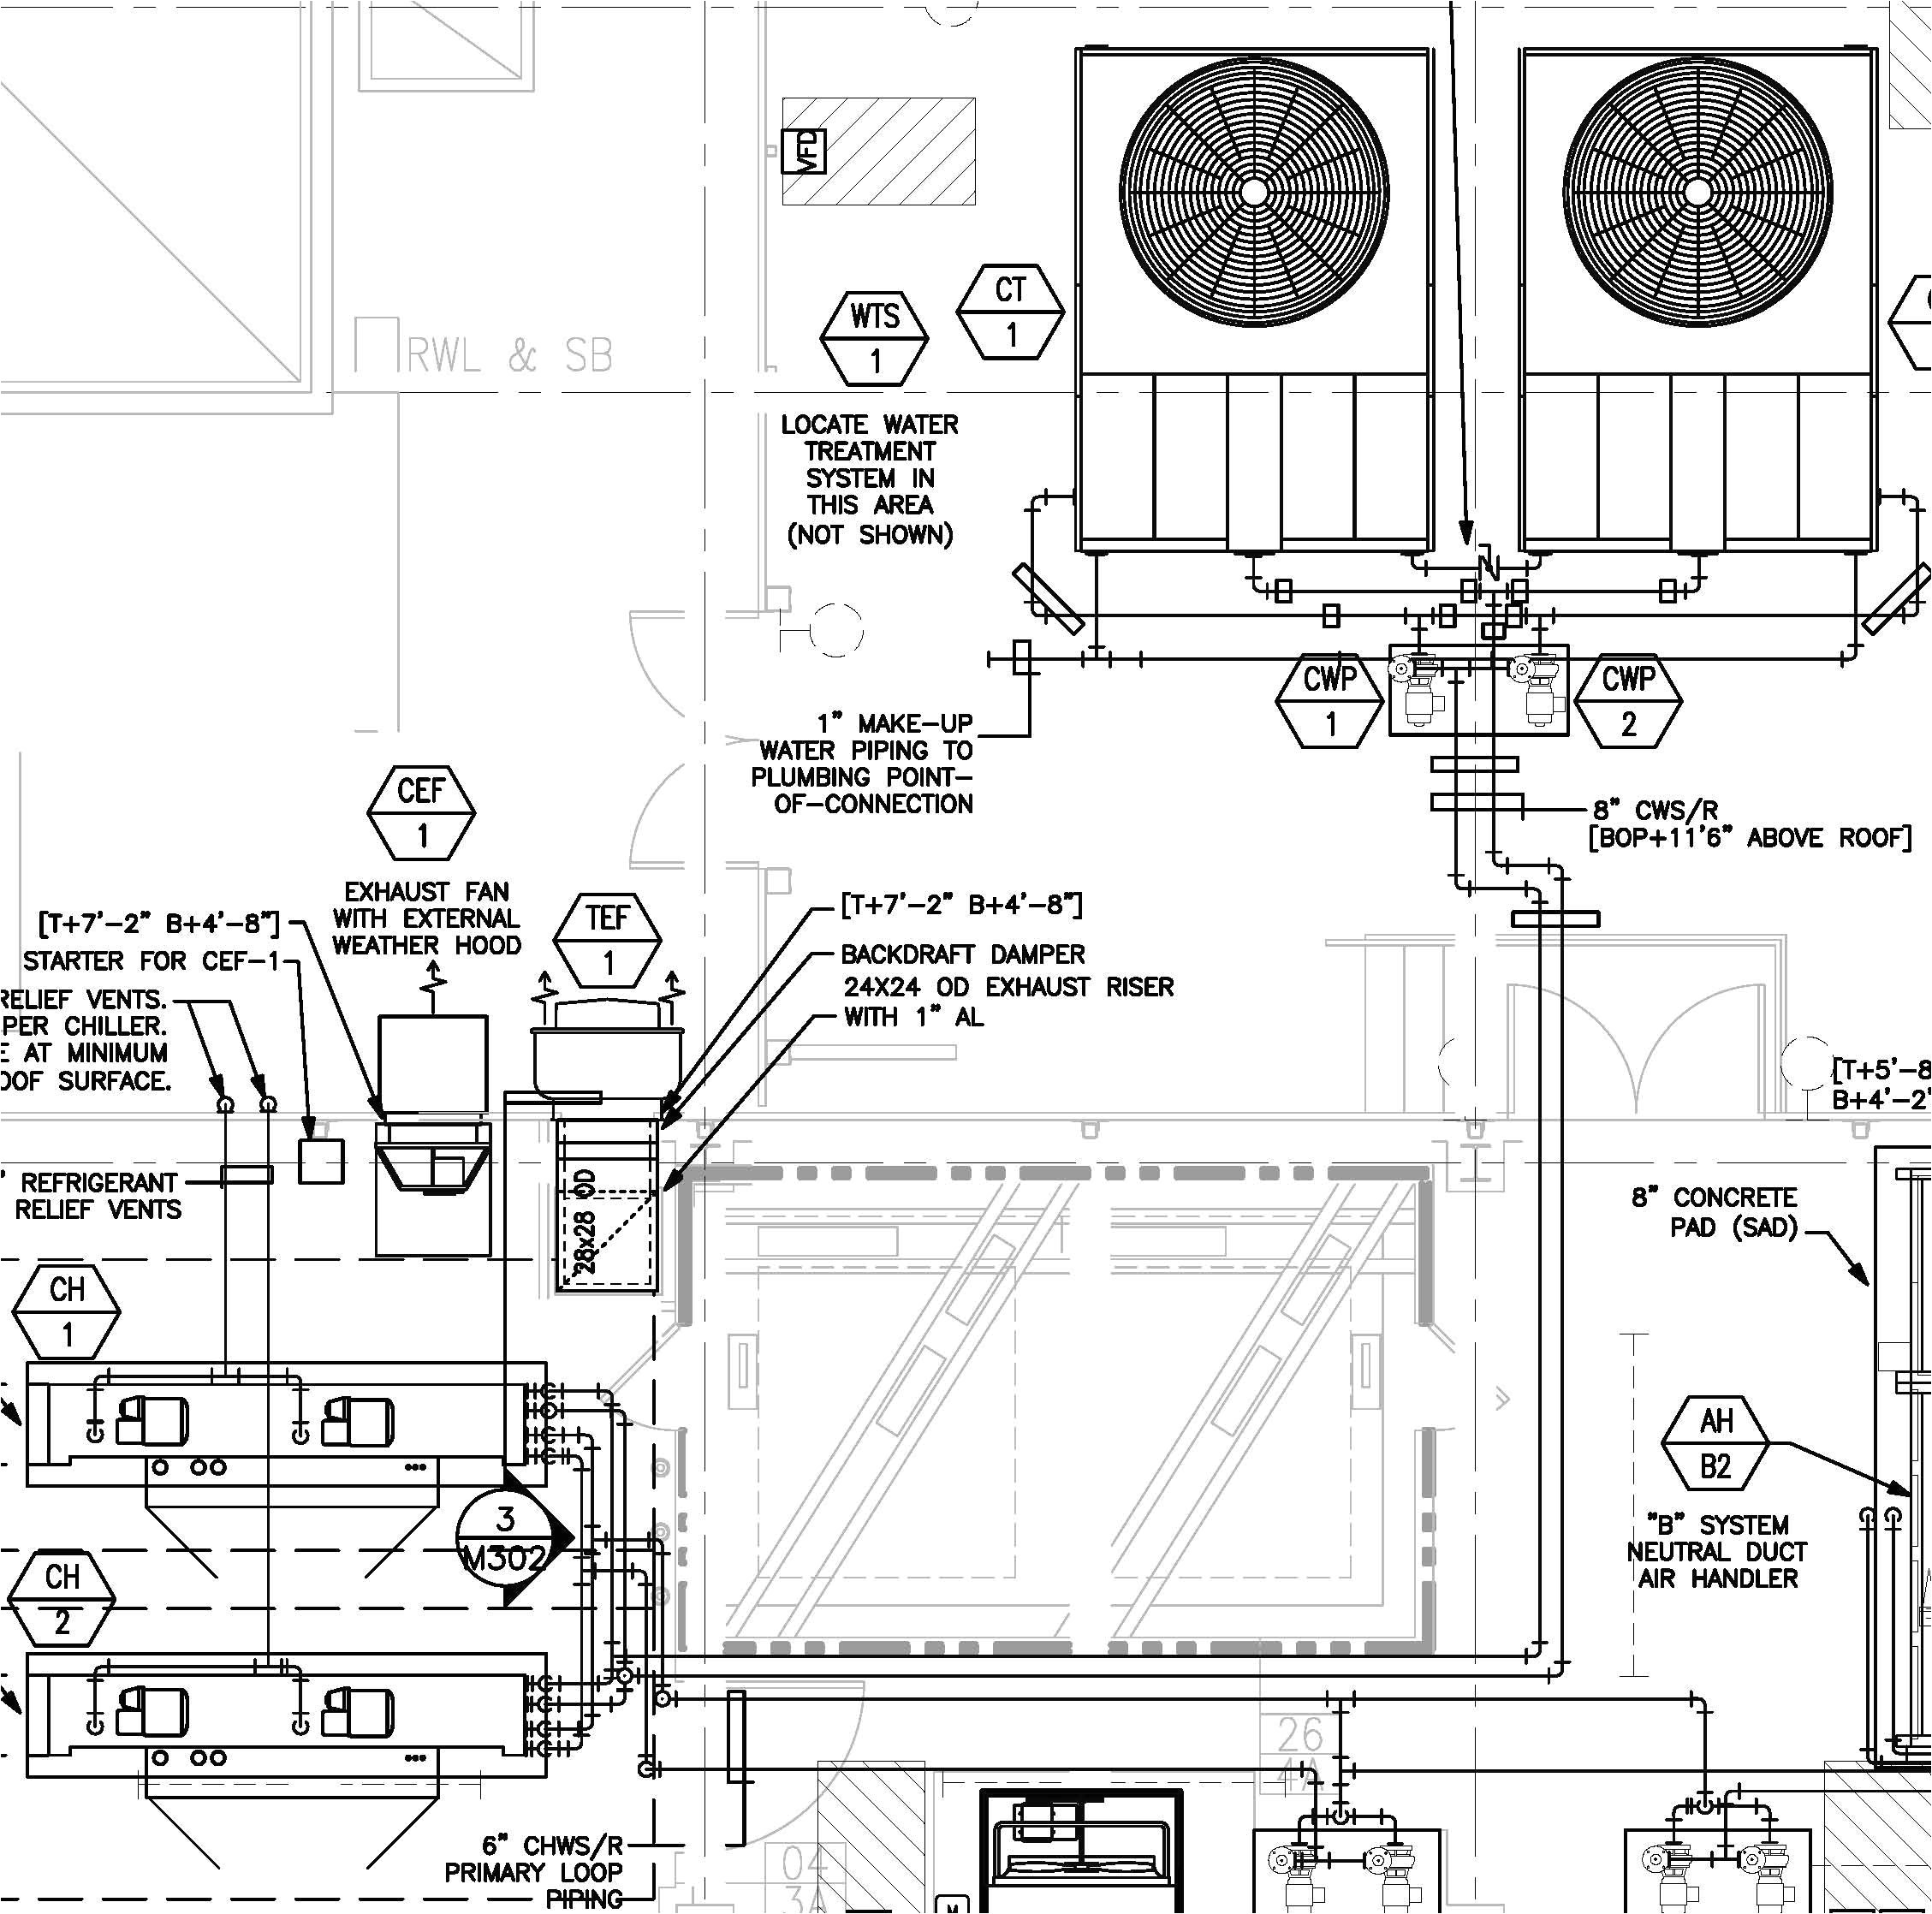 propane gas pipe sizing chart fresh gas piping diagram wiring schematics diagram 37 lovely propane